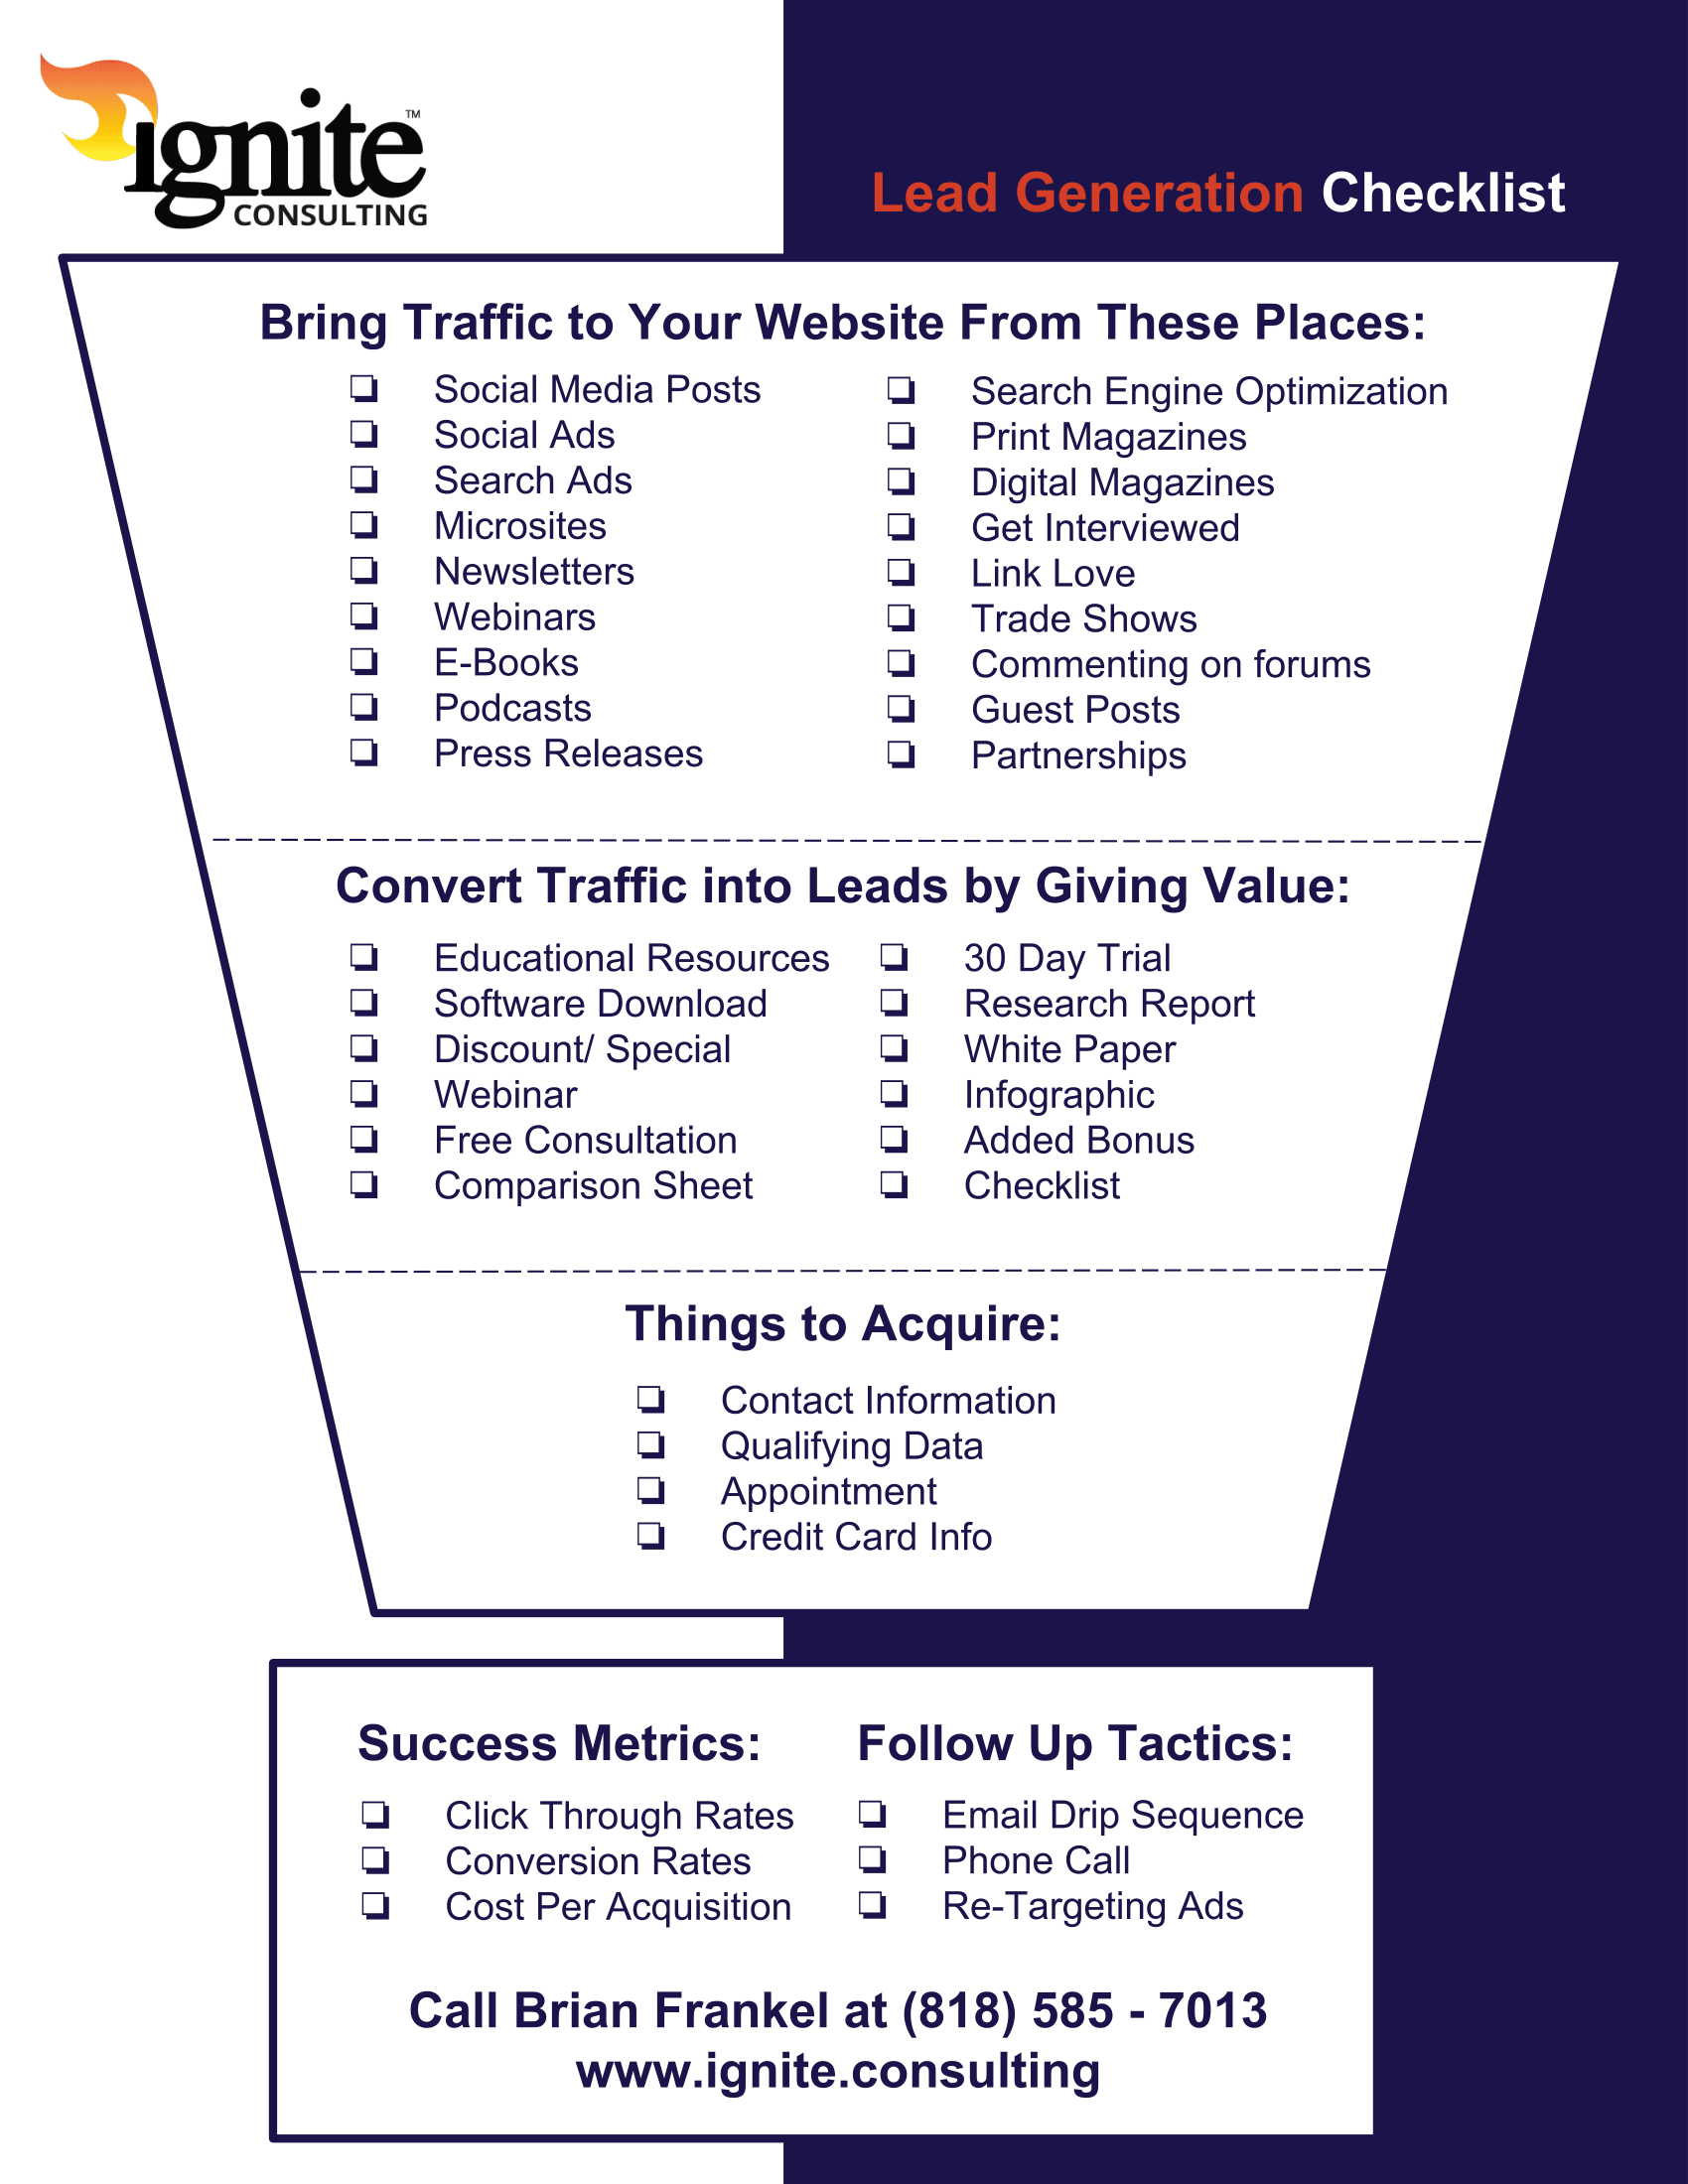 Ignite Consulting Lead Generation Checklist-1.png